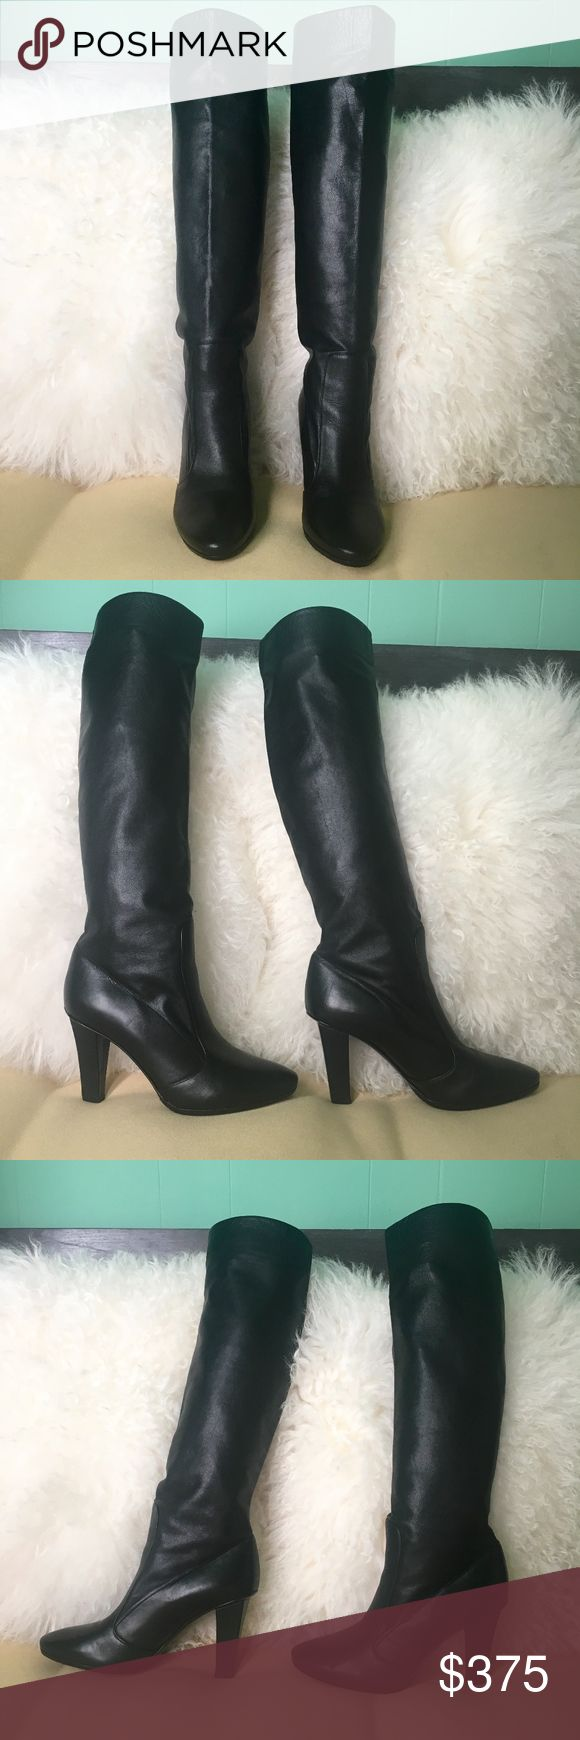 """Jimmy Choo Black High Heel Knee Boots Size 36.5 Gorgeous Jimmy Choo High Heel Knee High Boots.  Amazing, buttery soft leather, sexy, chic silhouette.  Pull on Style.  Unmistakable Jimmy Choo craftsmanship.      Measurements (approx):   Shaft:  14"""" Heels:  3""""  True Choo Sizing  Worn only once!  Professionally resoled to protect leather soles.  Shiny layer on soles scuffed off after first wear, not worn since.  Two nicks on heels also professionally repaired.  Not noticeable when worn.  Please…"""